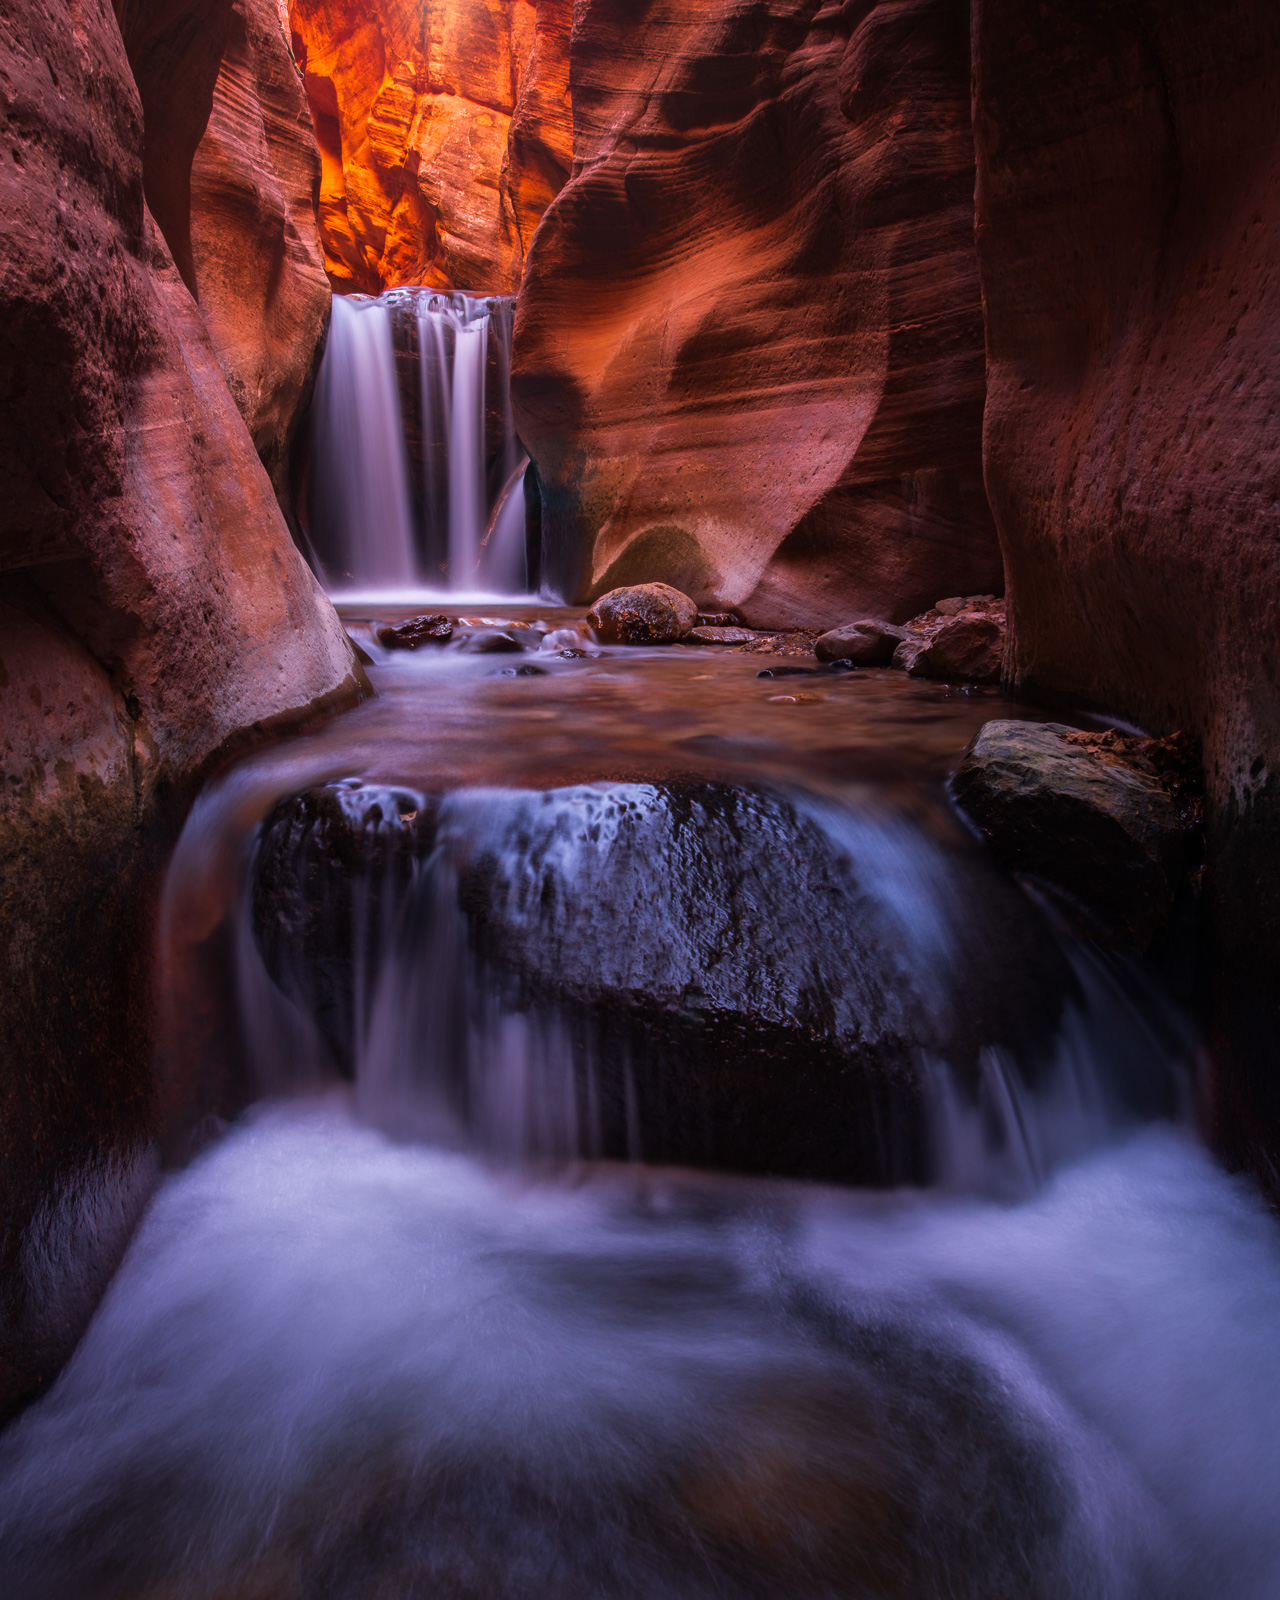 Waterfall in a small slot canyon just outside of Zion NAtional Park in southern Utah.